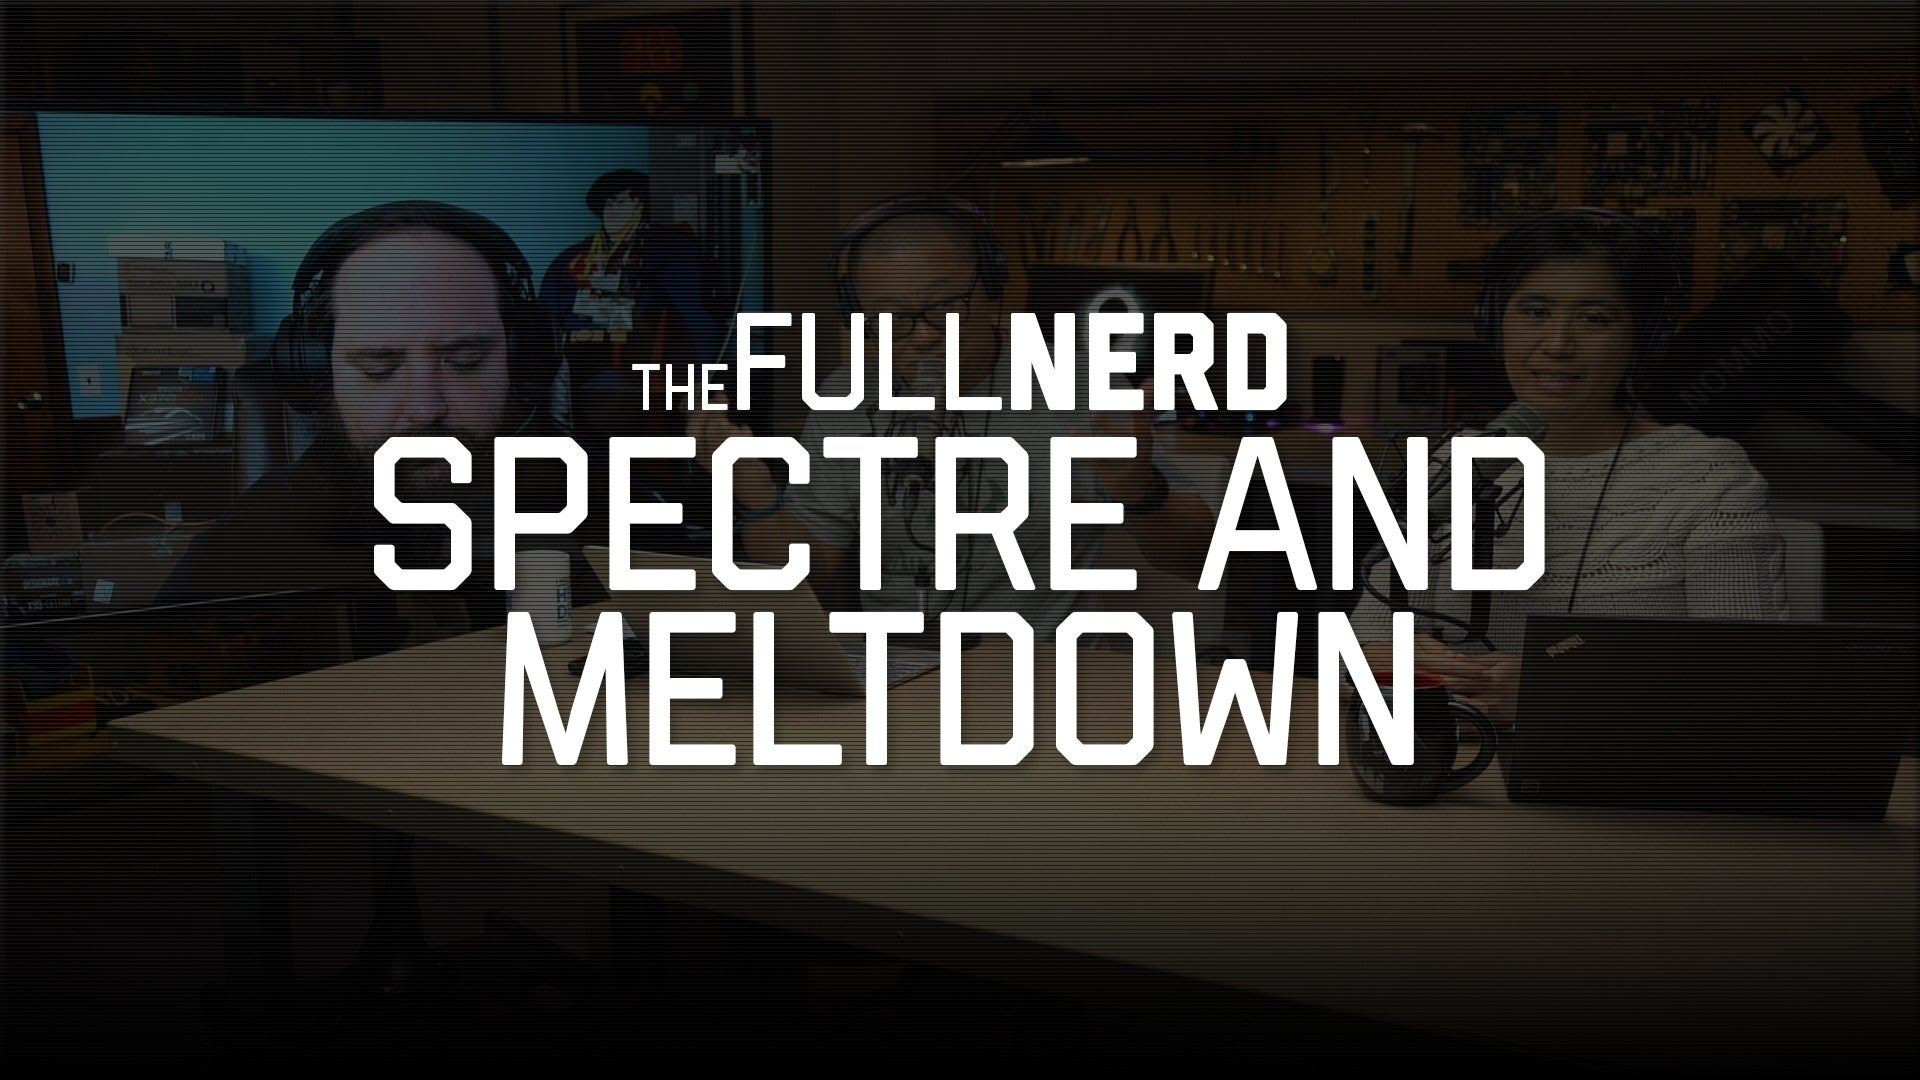 The Full Nerd: Spectre and Meltdown